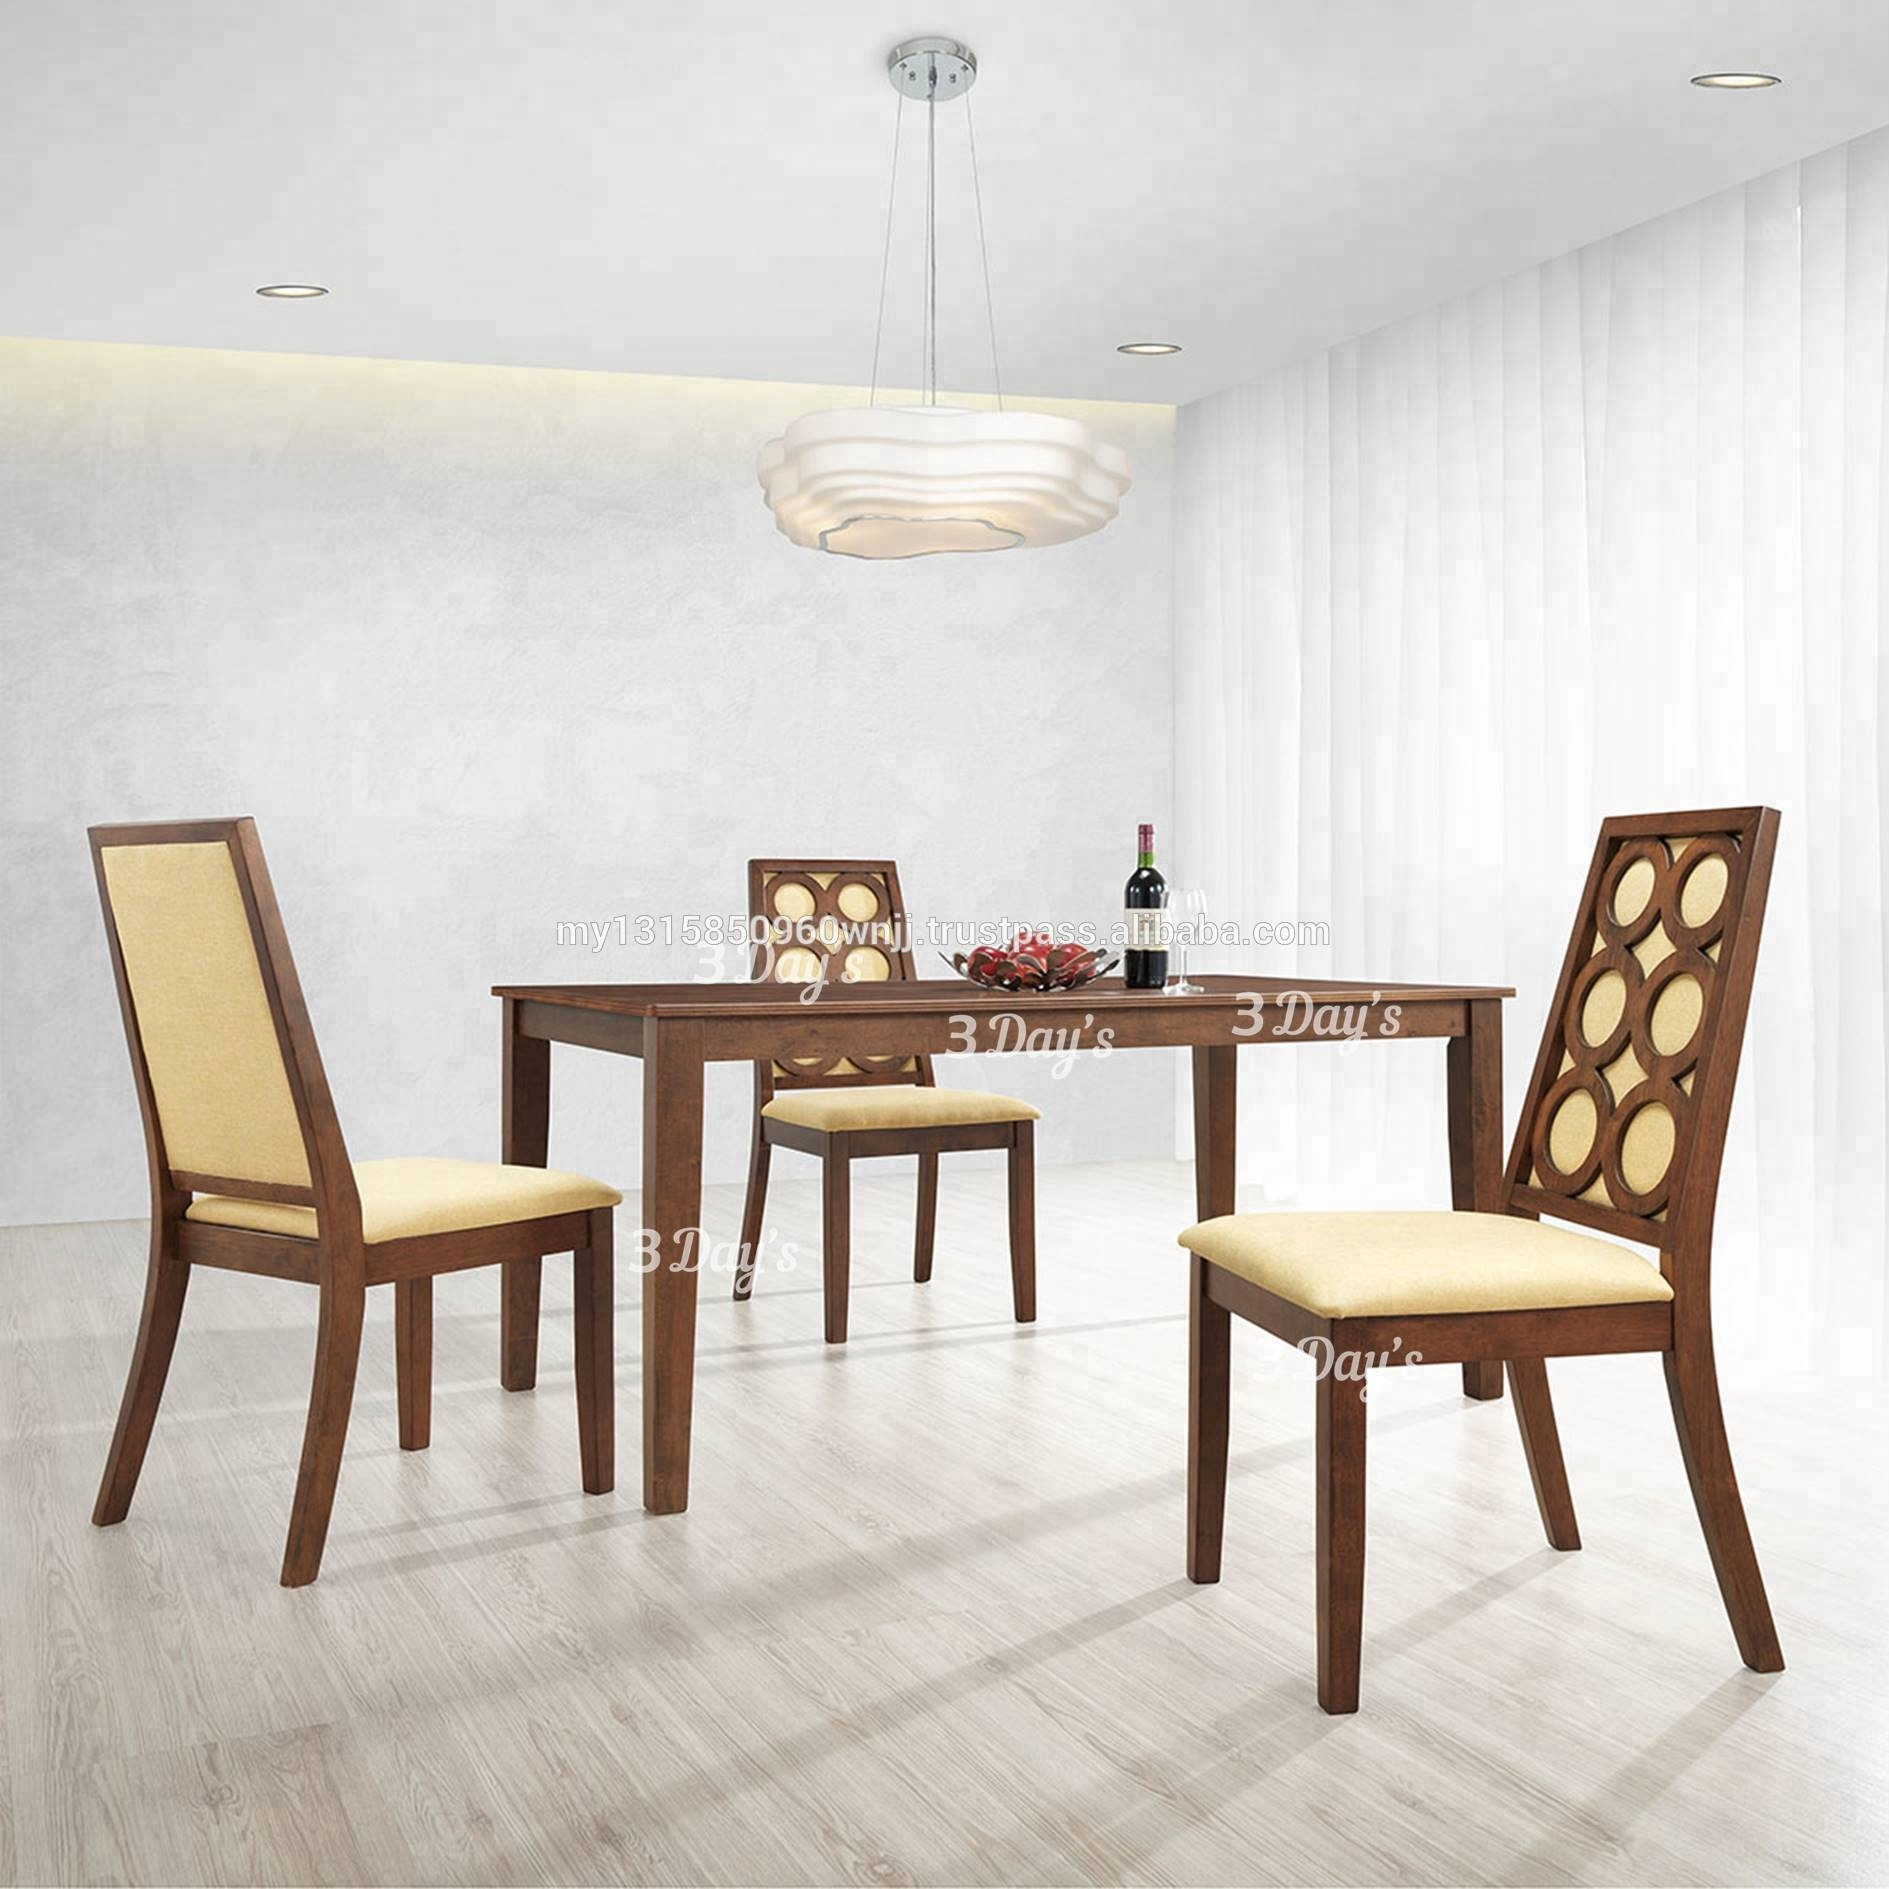 Modern Wooden Dining Room Set With Dining Table And Fabric Dining Chair Buy Dining Room Setsdining Table Setclassic Dining Room Sets Product On